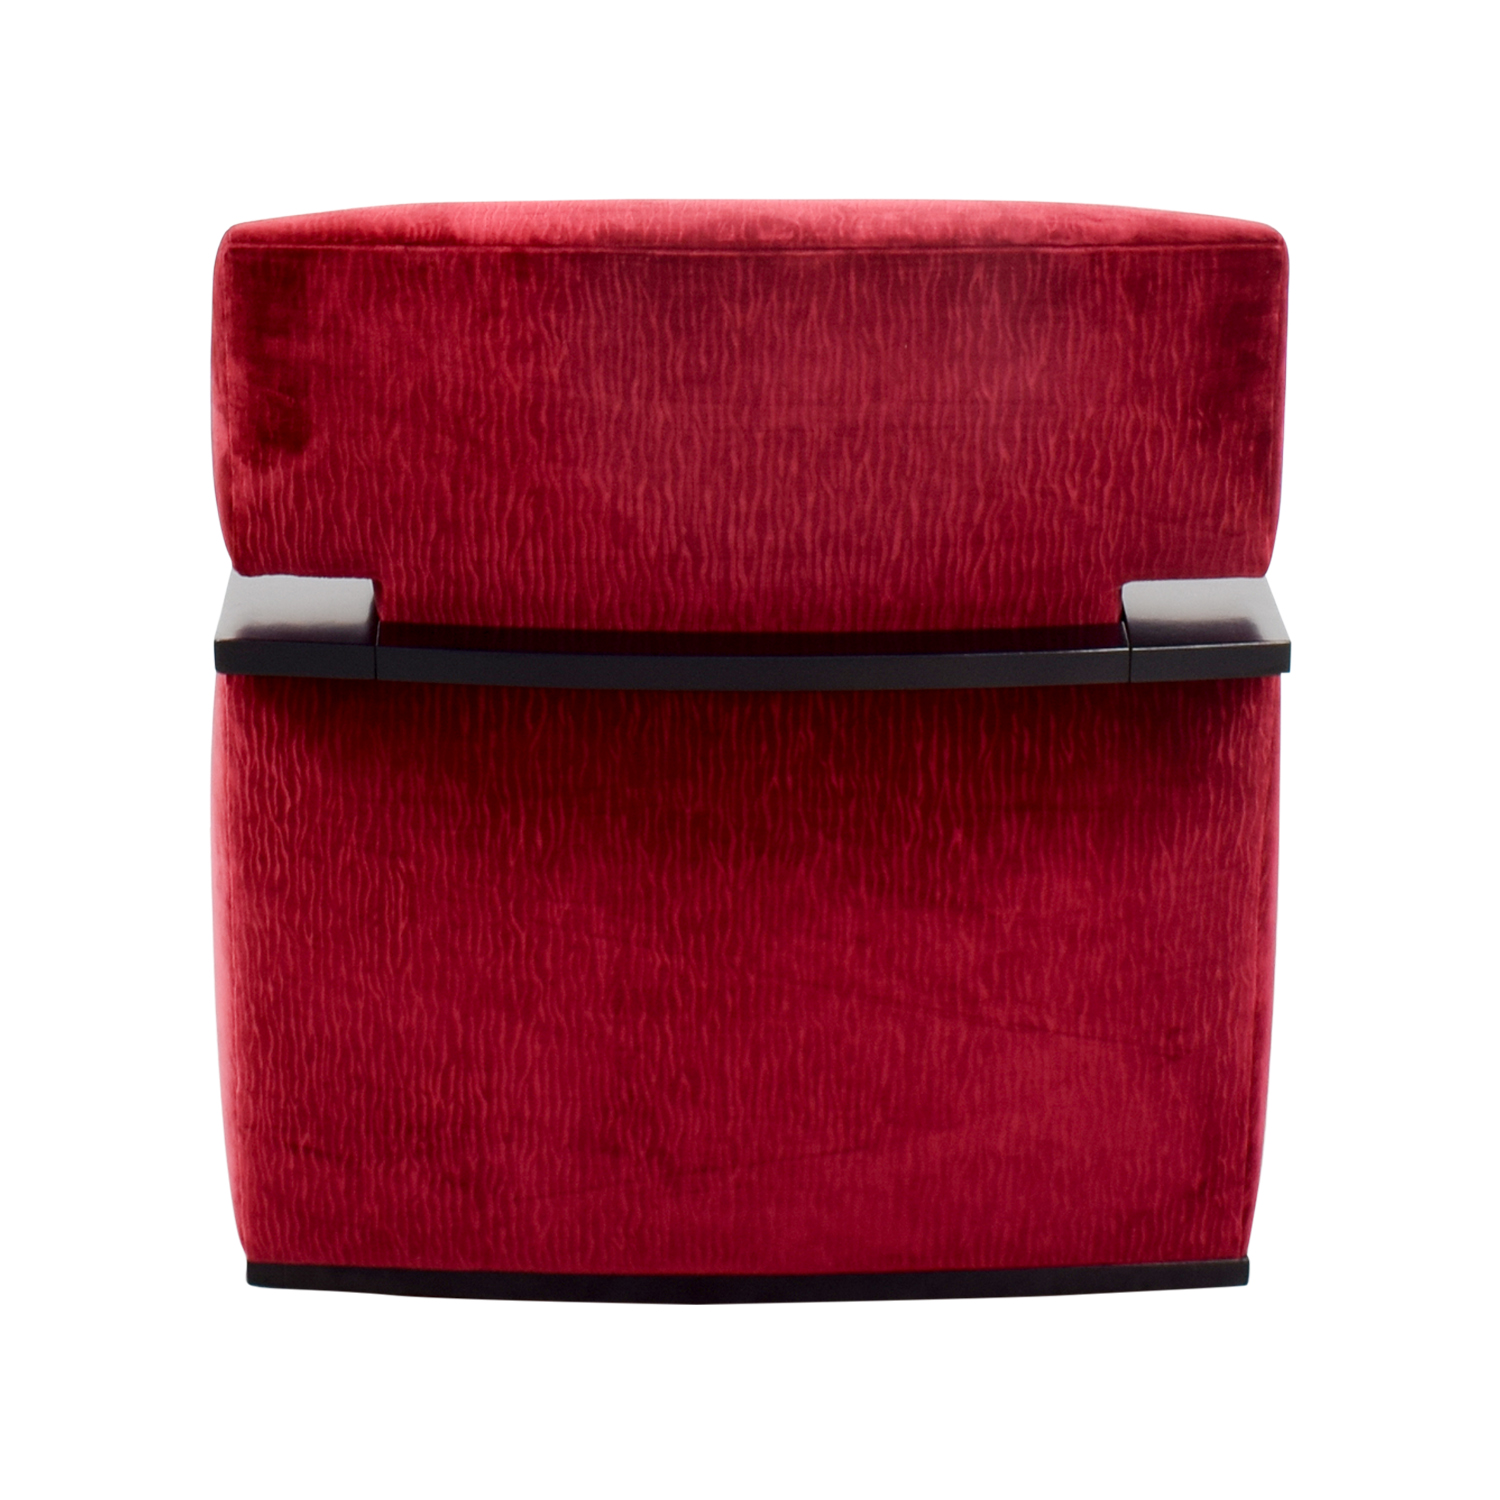 Red Arm Chair with Black Accents Chairs